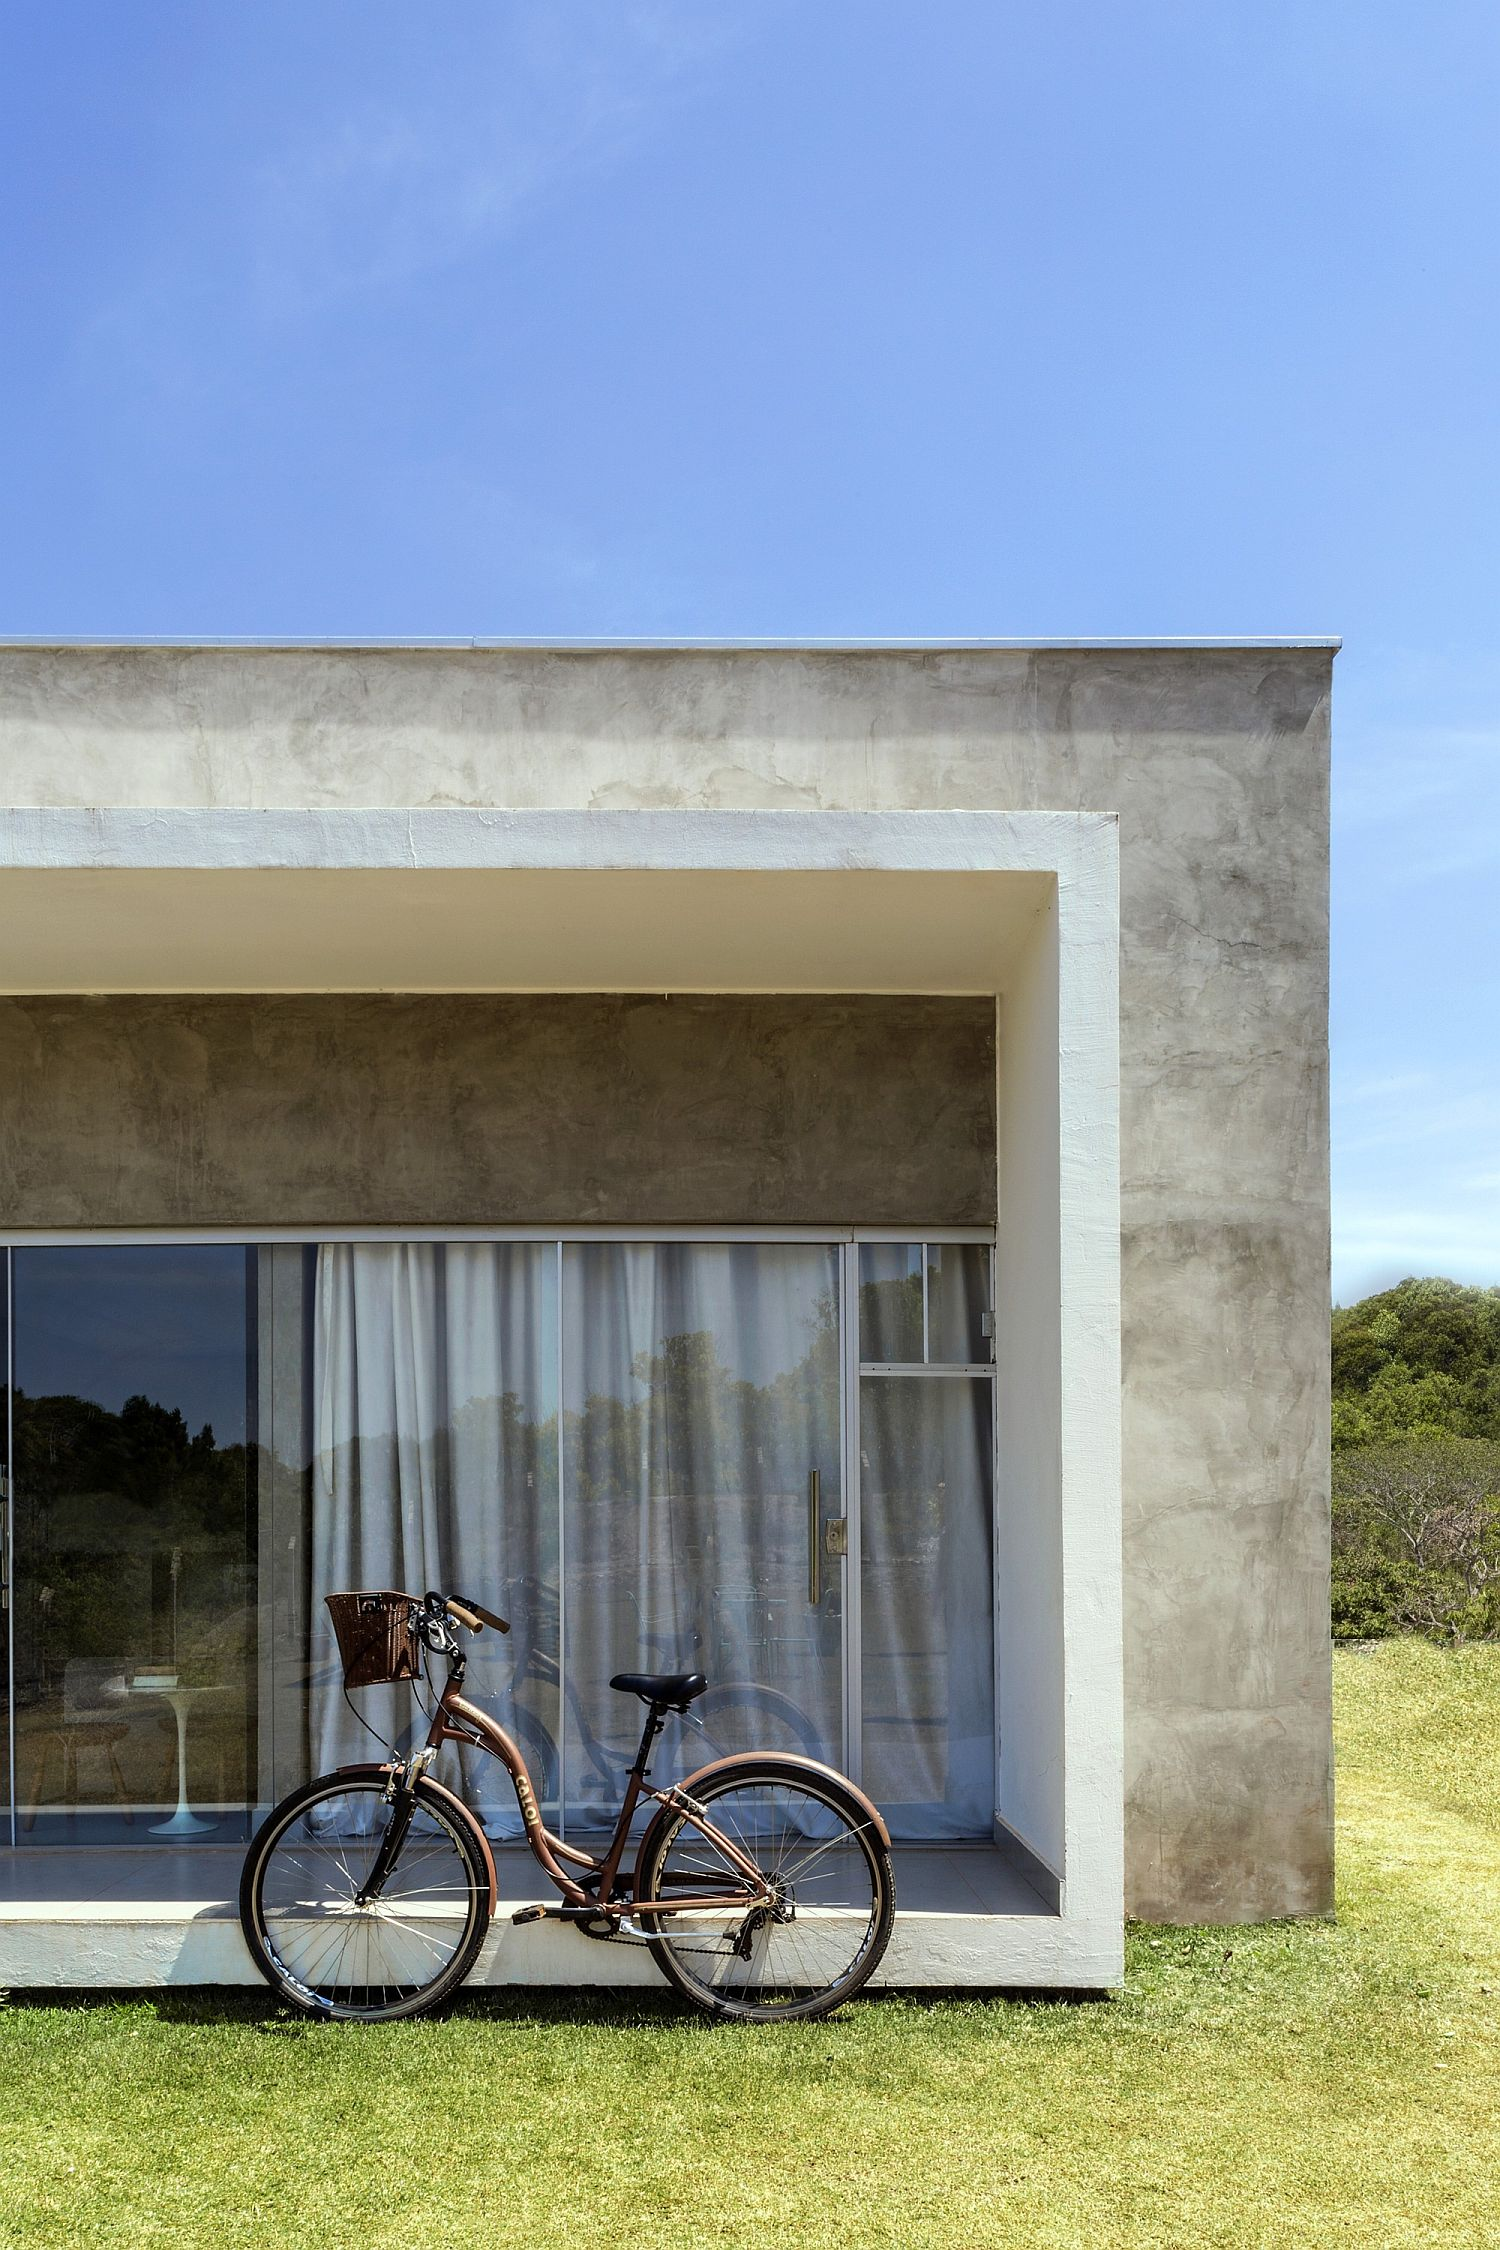 Block-within-a-block-design-style-of-the-house-gives-it-a-unique-appeal